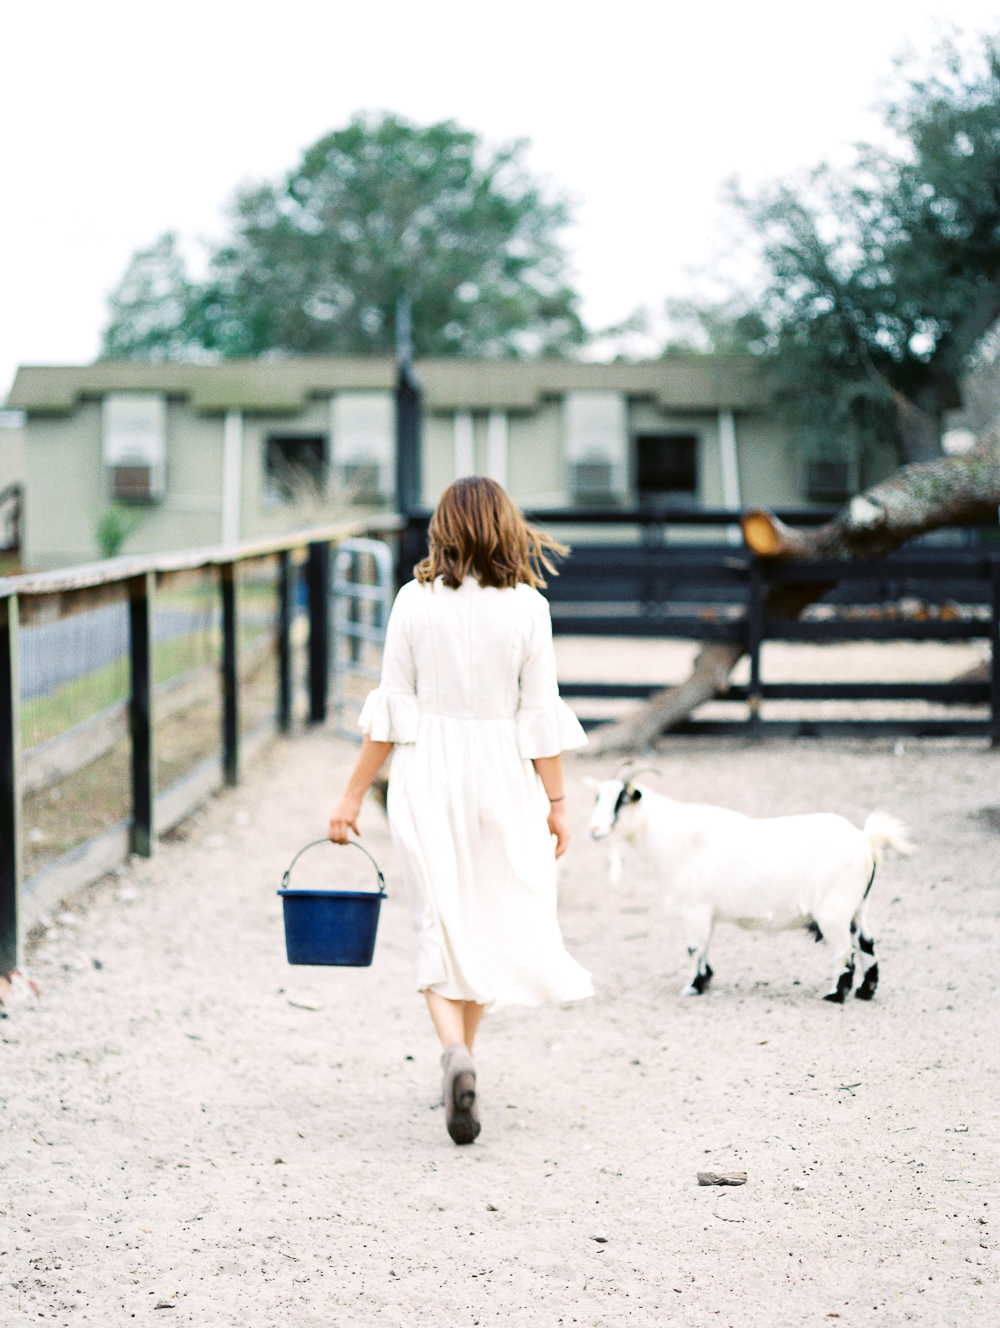 Photographs by  Justine Wright